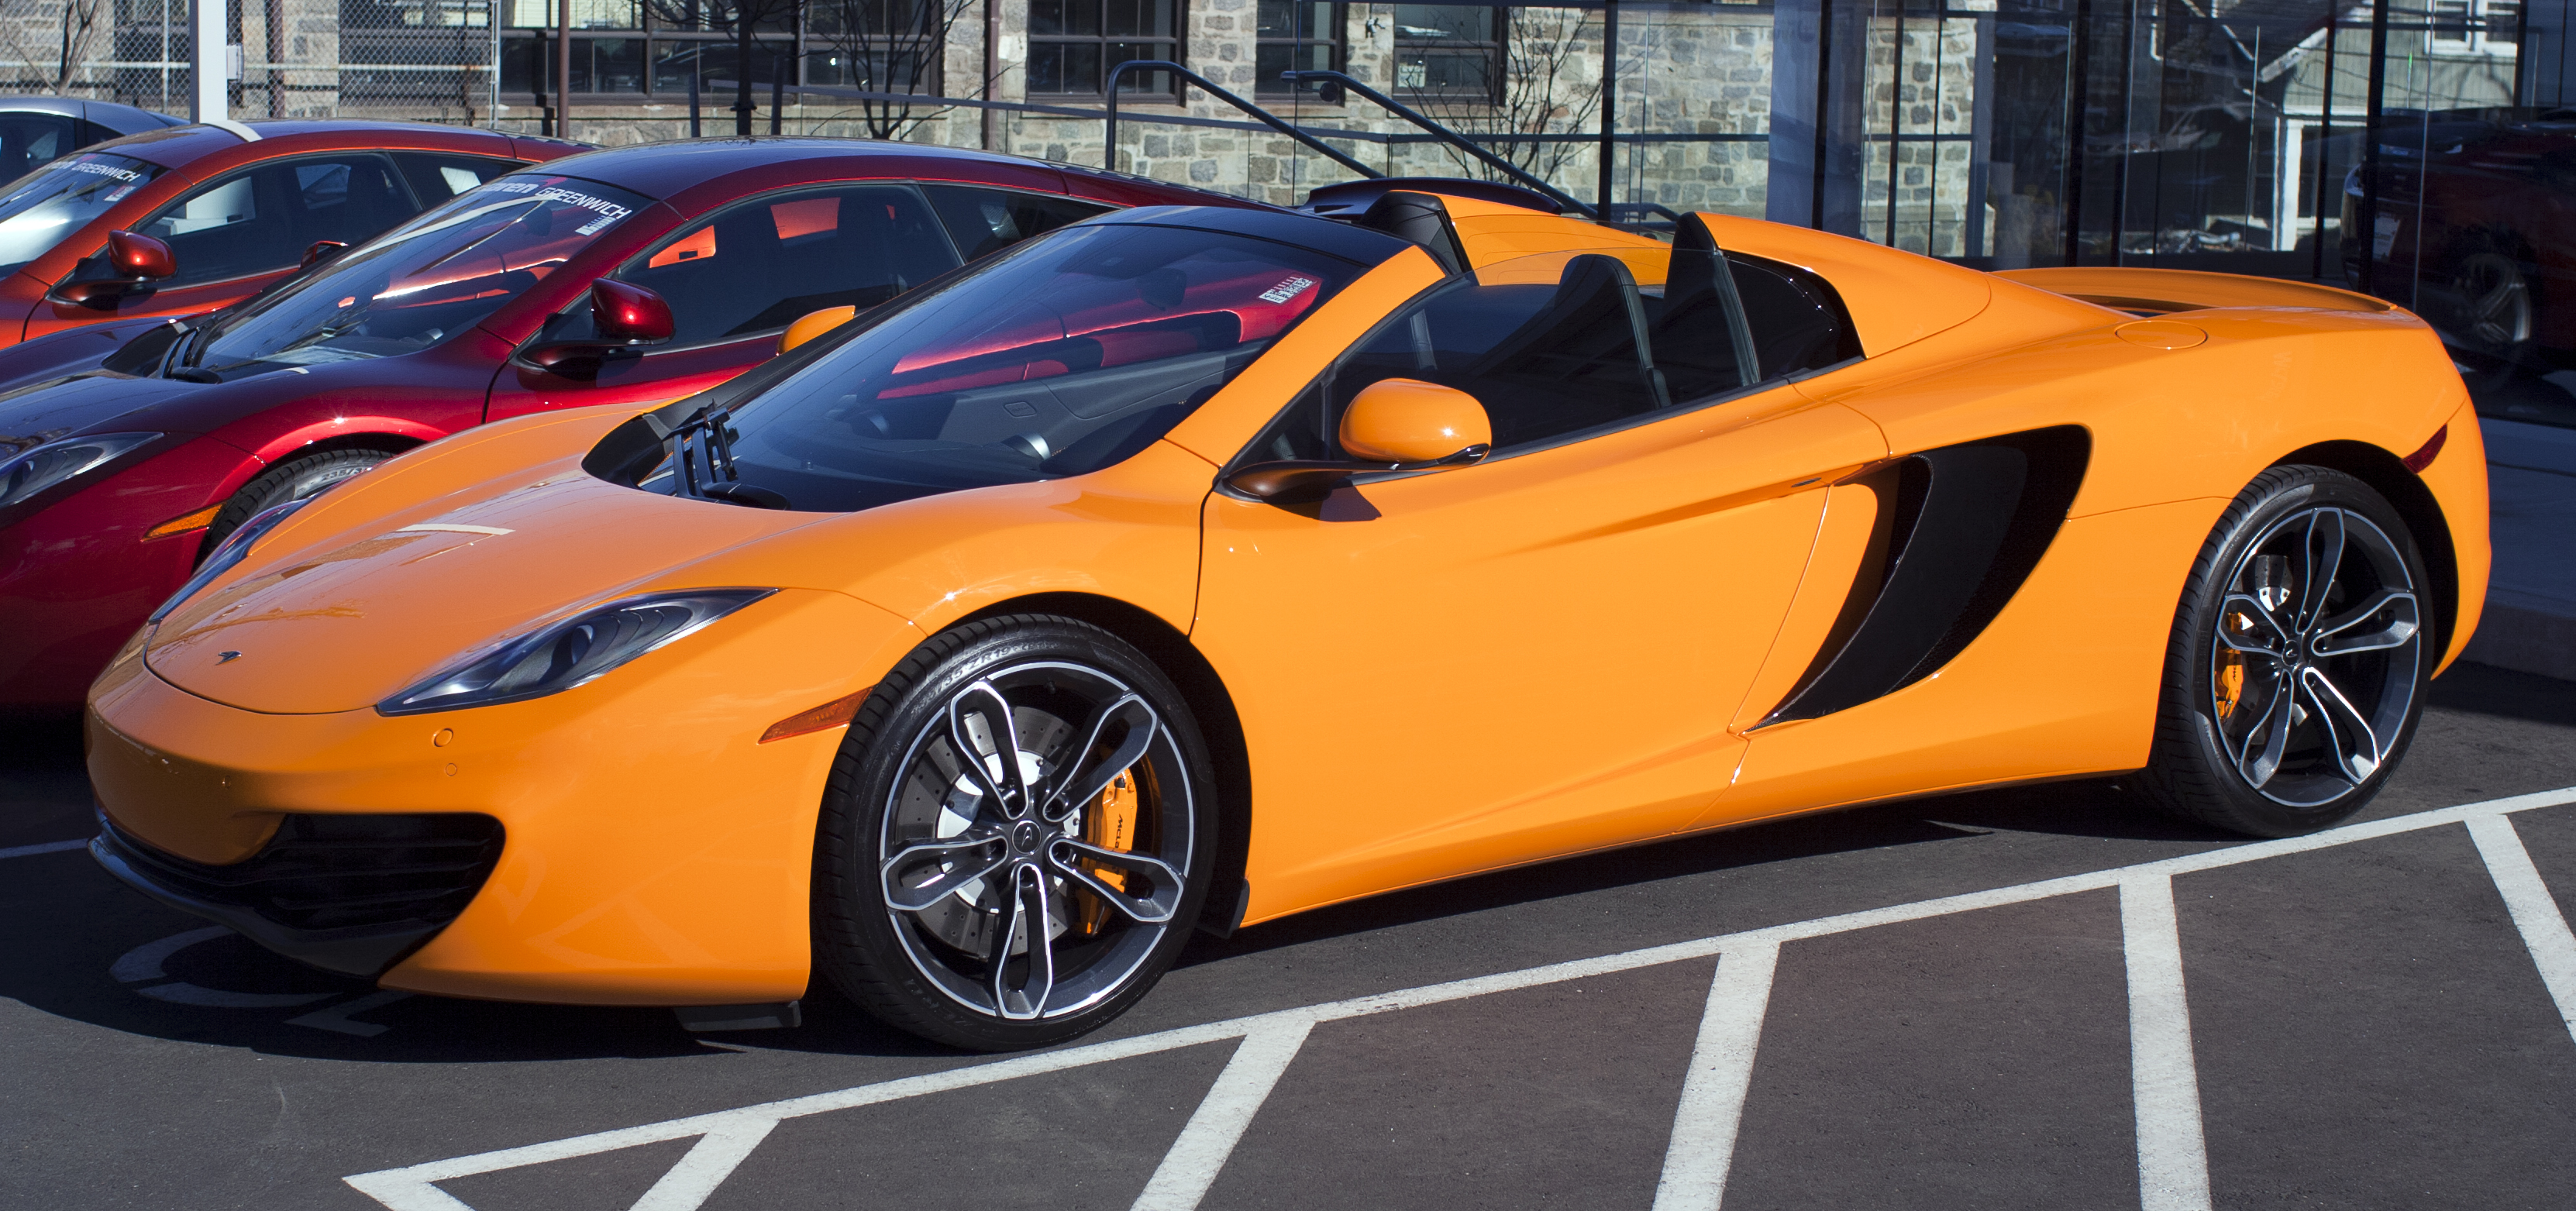 https://upload.wikimedia.org/wikipedia/commons/3/36/2013_McLaren_MP4-12C_Spider_fl.jpg